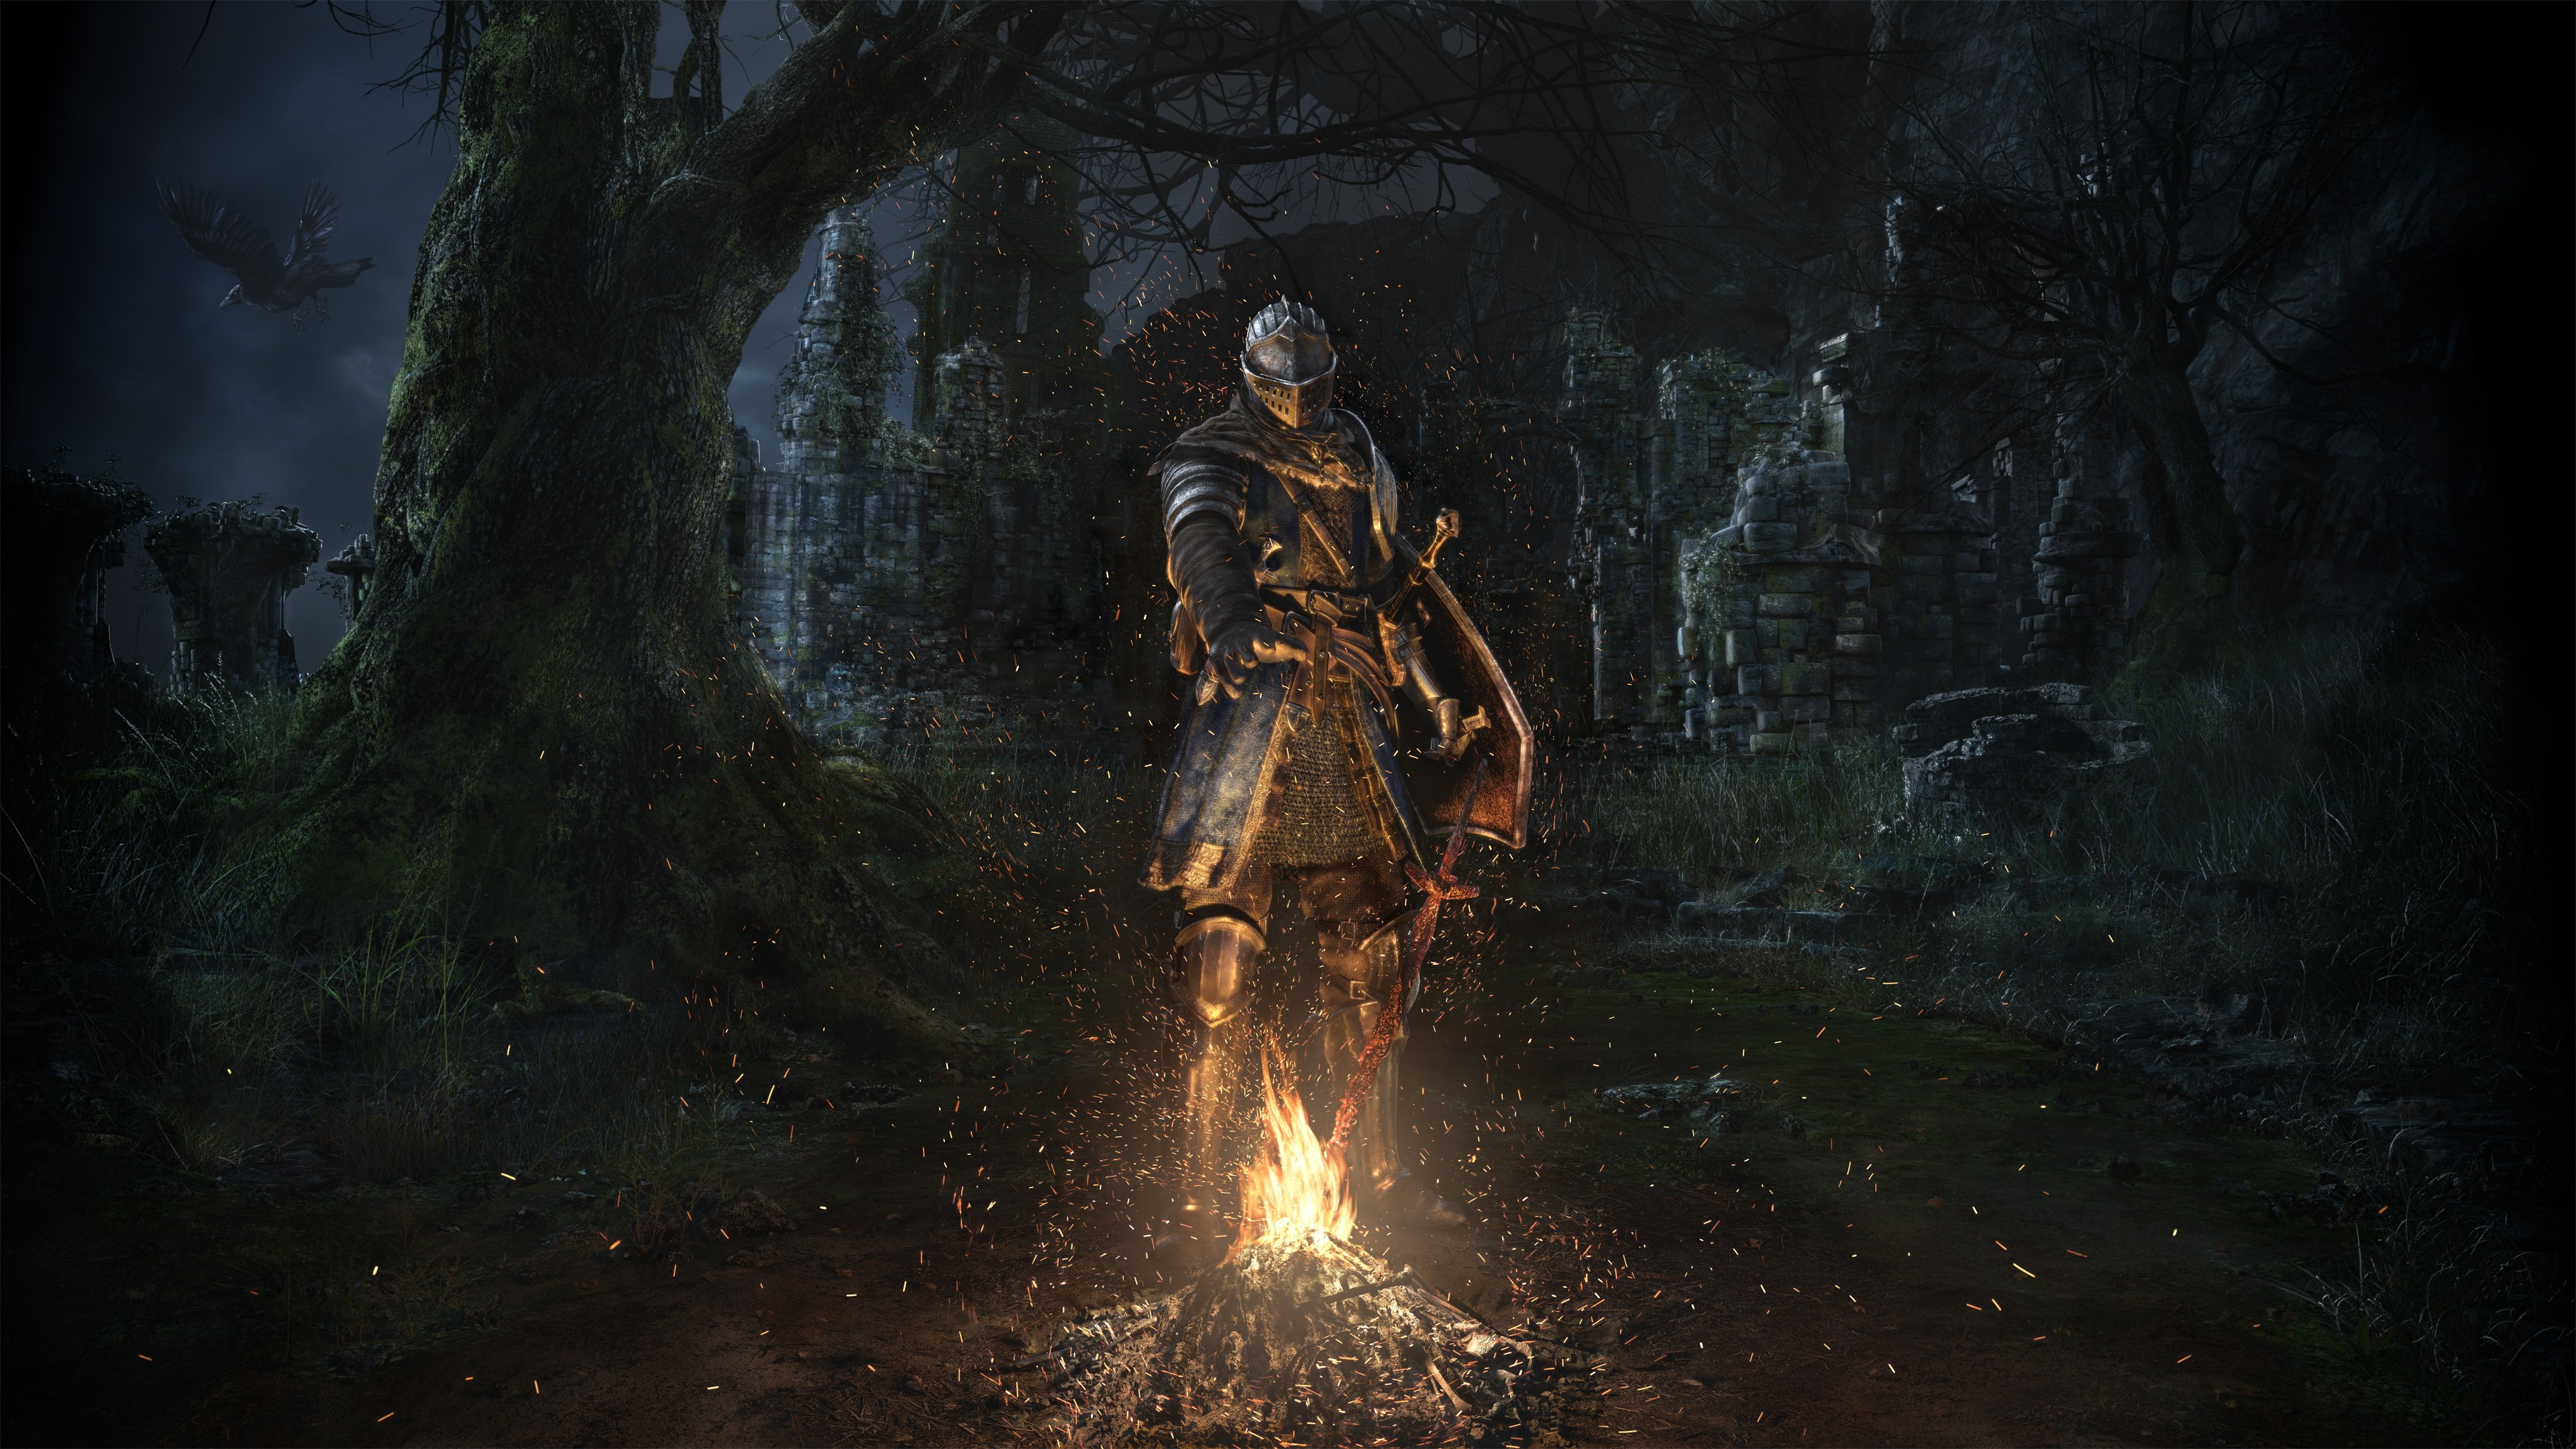 3840x2160 Ultra Hd 4k Resolutions 3840 X 2160 Original Dark Souls Remastered 4k 3840x2160 Download Hd Wallpaper Wallpapertip